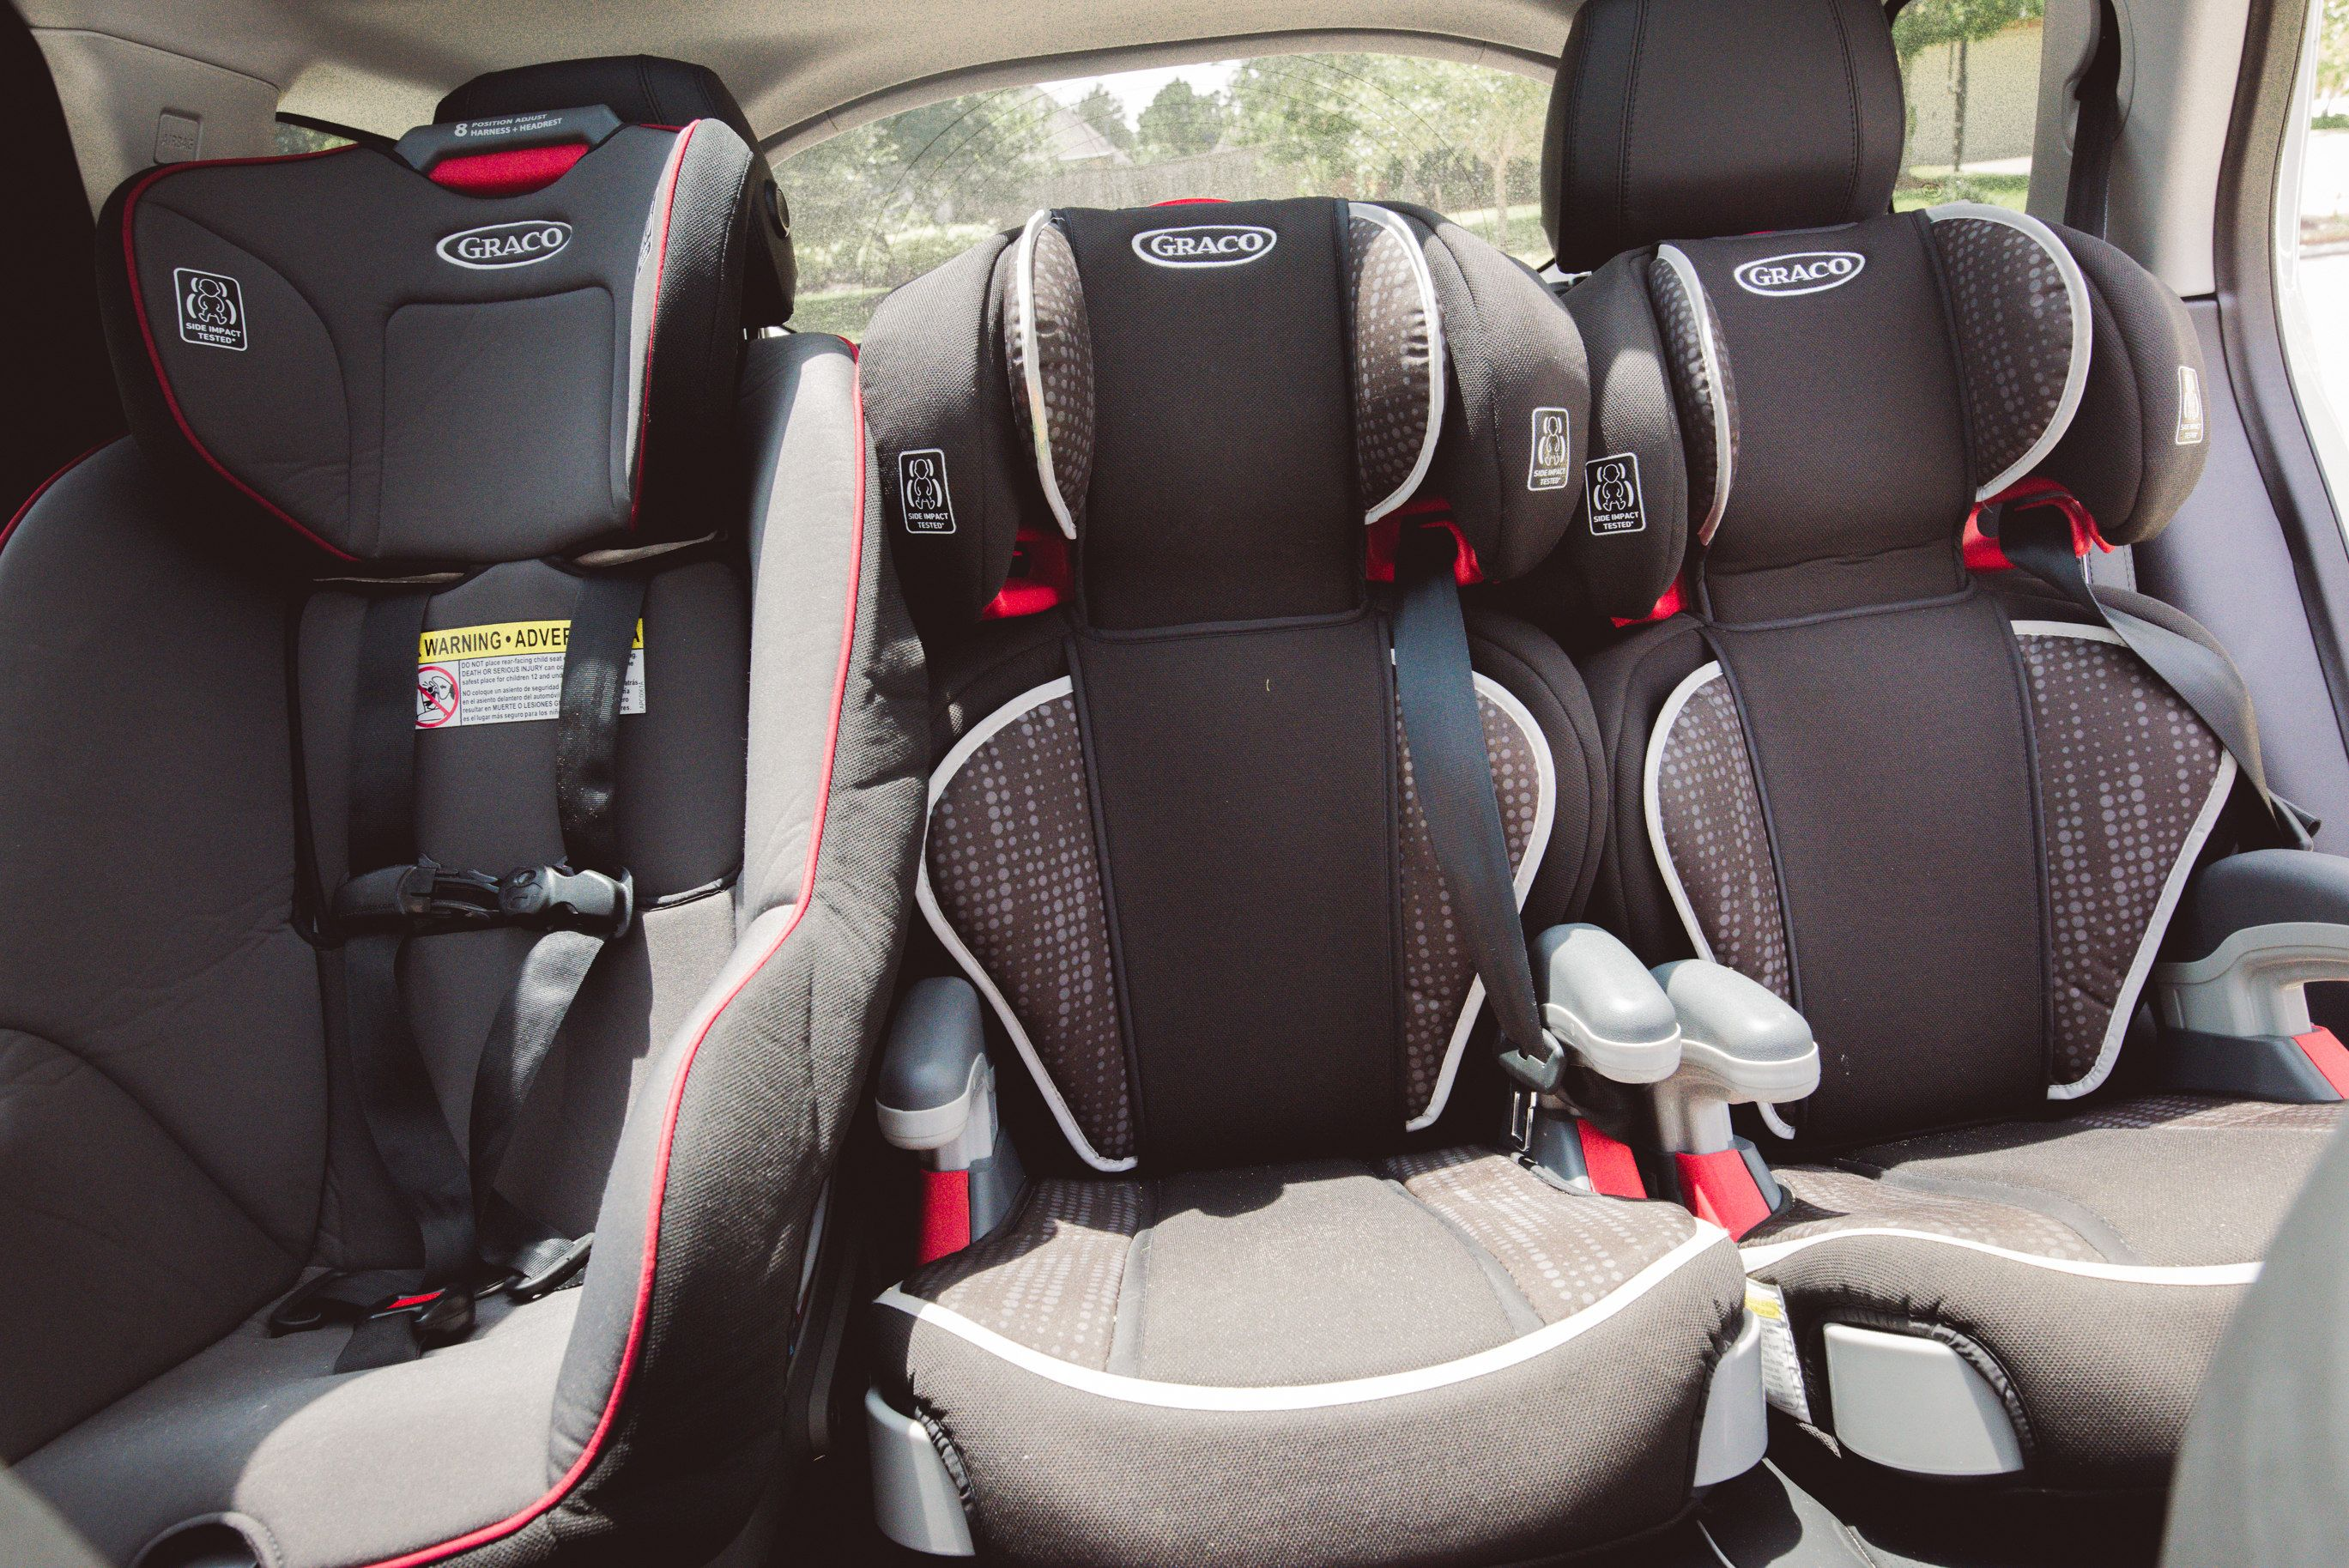 3 Across Luxury Suvs Discovery Sport 3 Across Installations Land Rover New Land Rover Car Seats